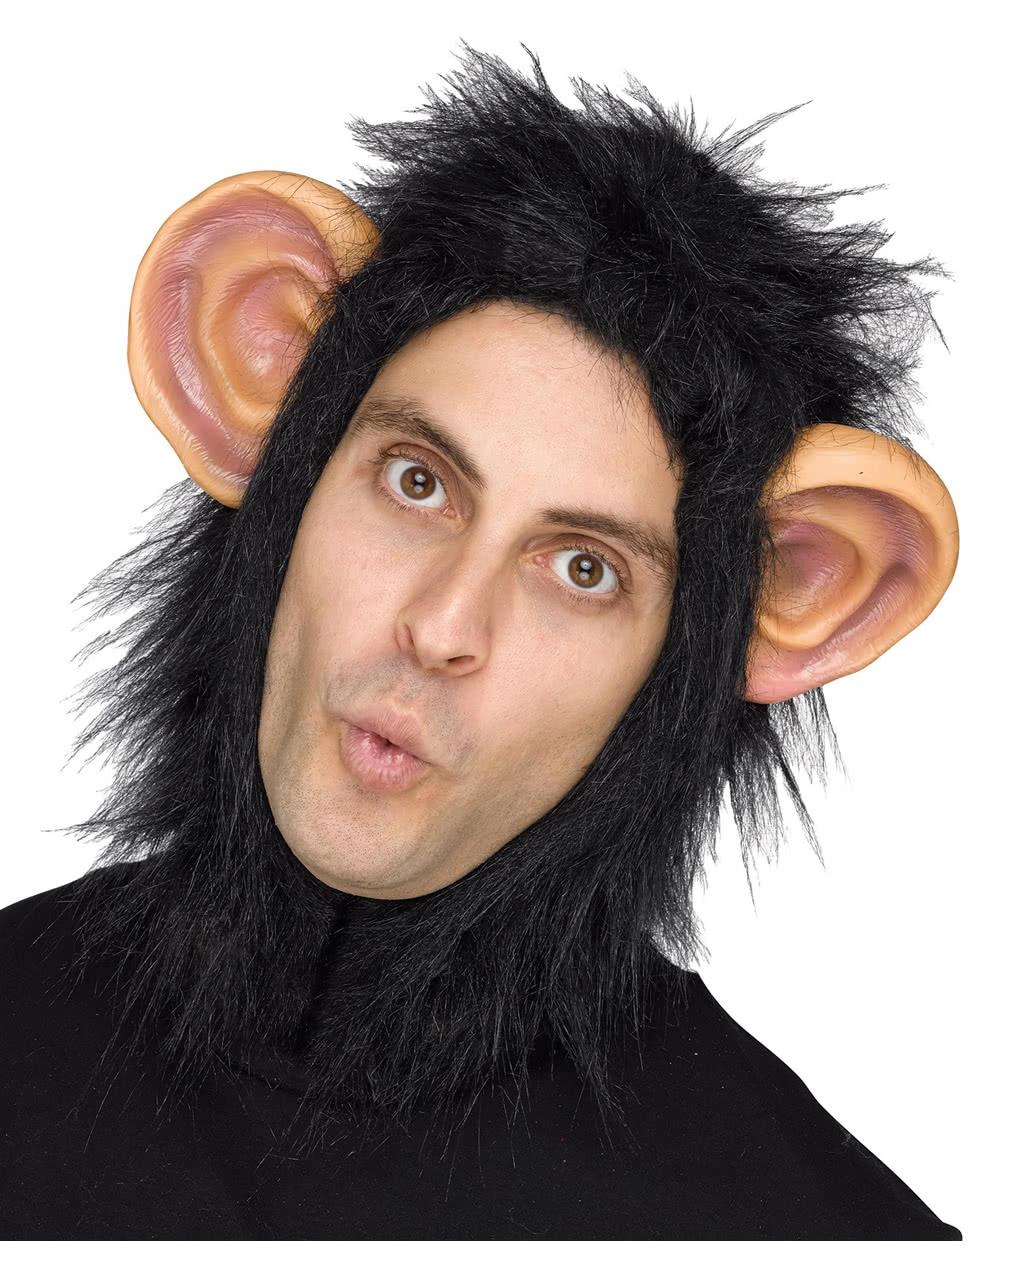 Monkey cap As a carnival costume accessory